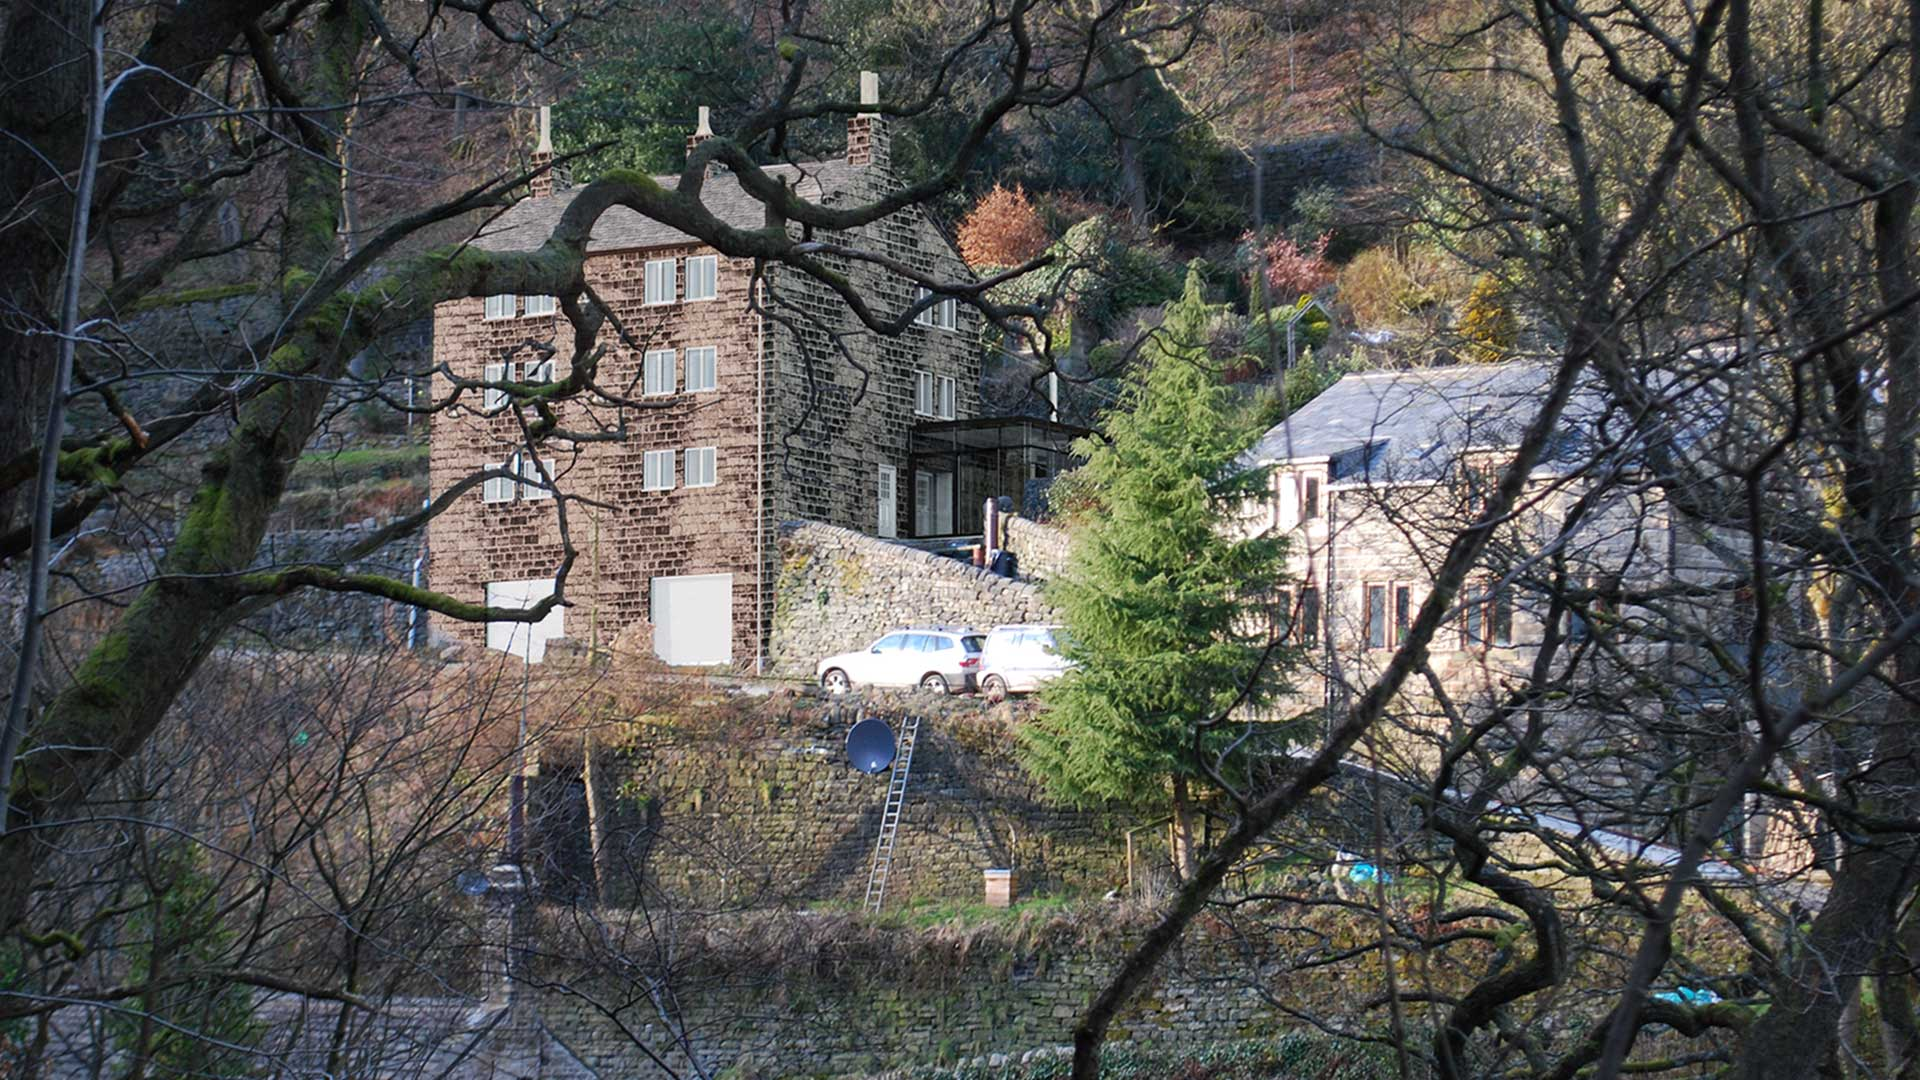 dta_lower_lumb_conversion_extension_listed_building_view_2